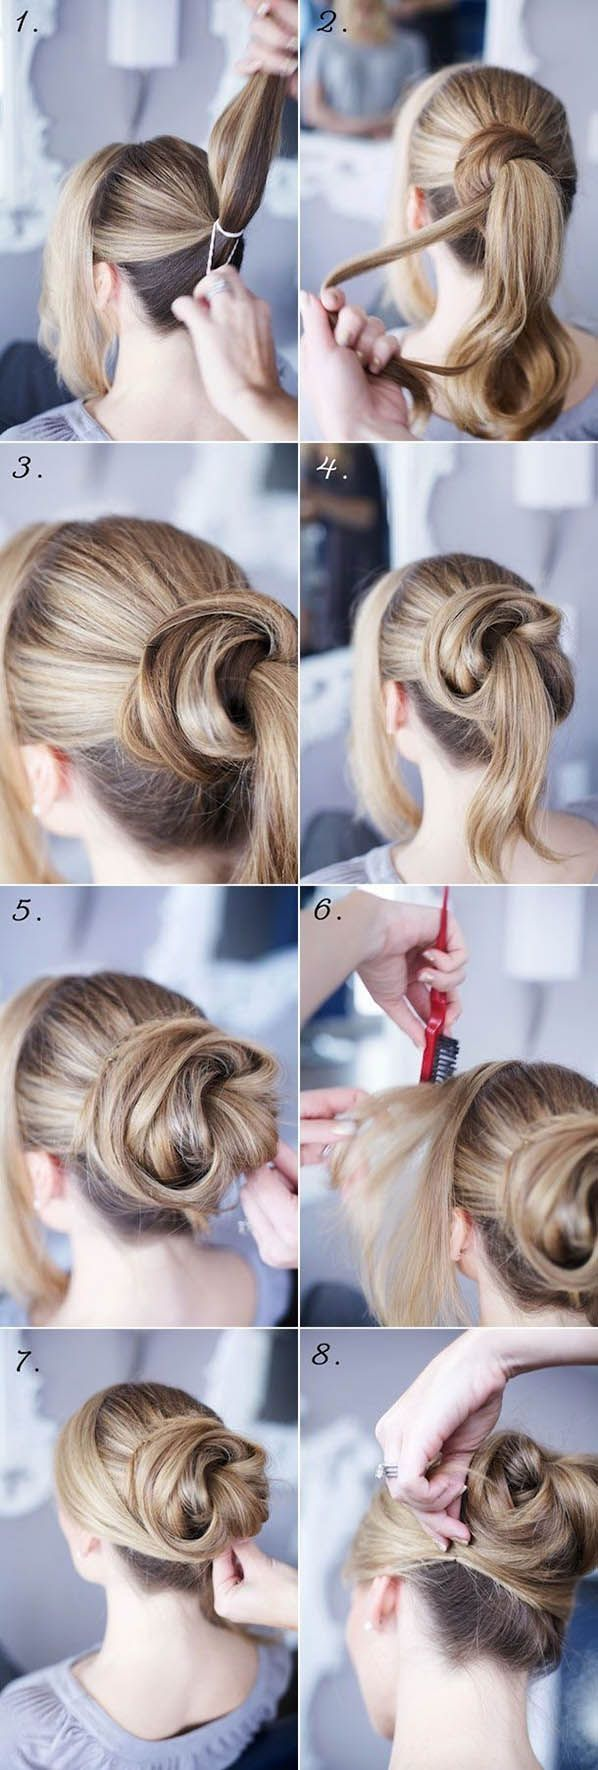 Pin By Makhaila Dudley On Hair Style Hair Styles Long Hair Styles Updo Hairstyles Tutorials